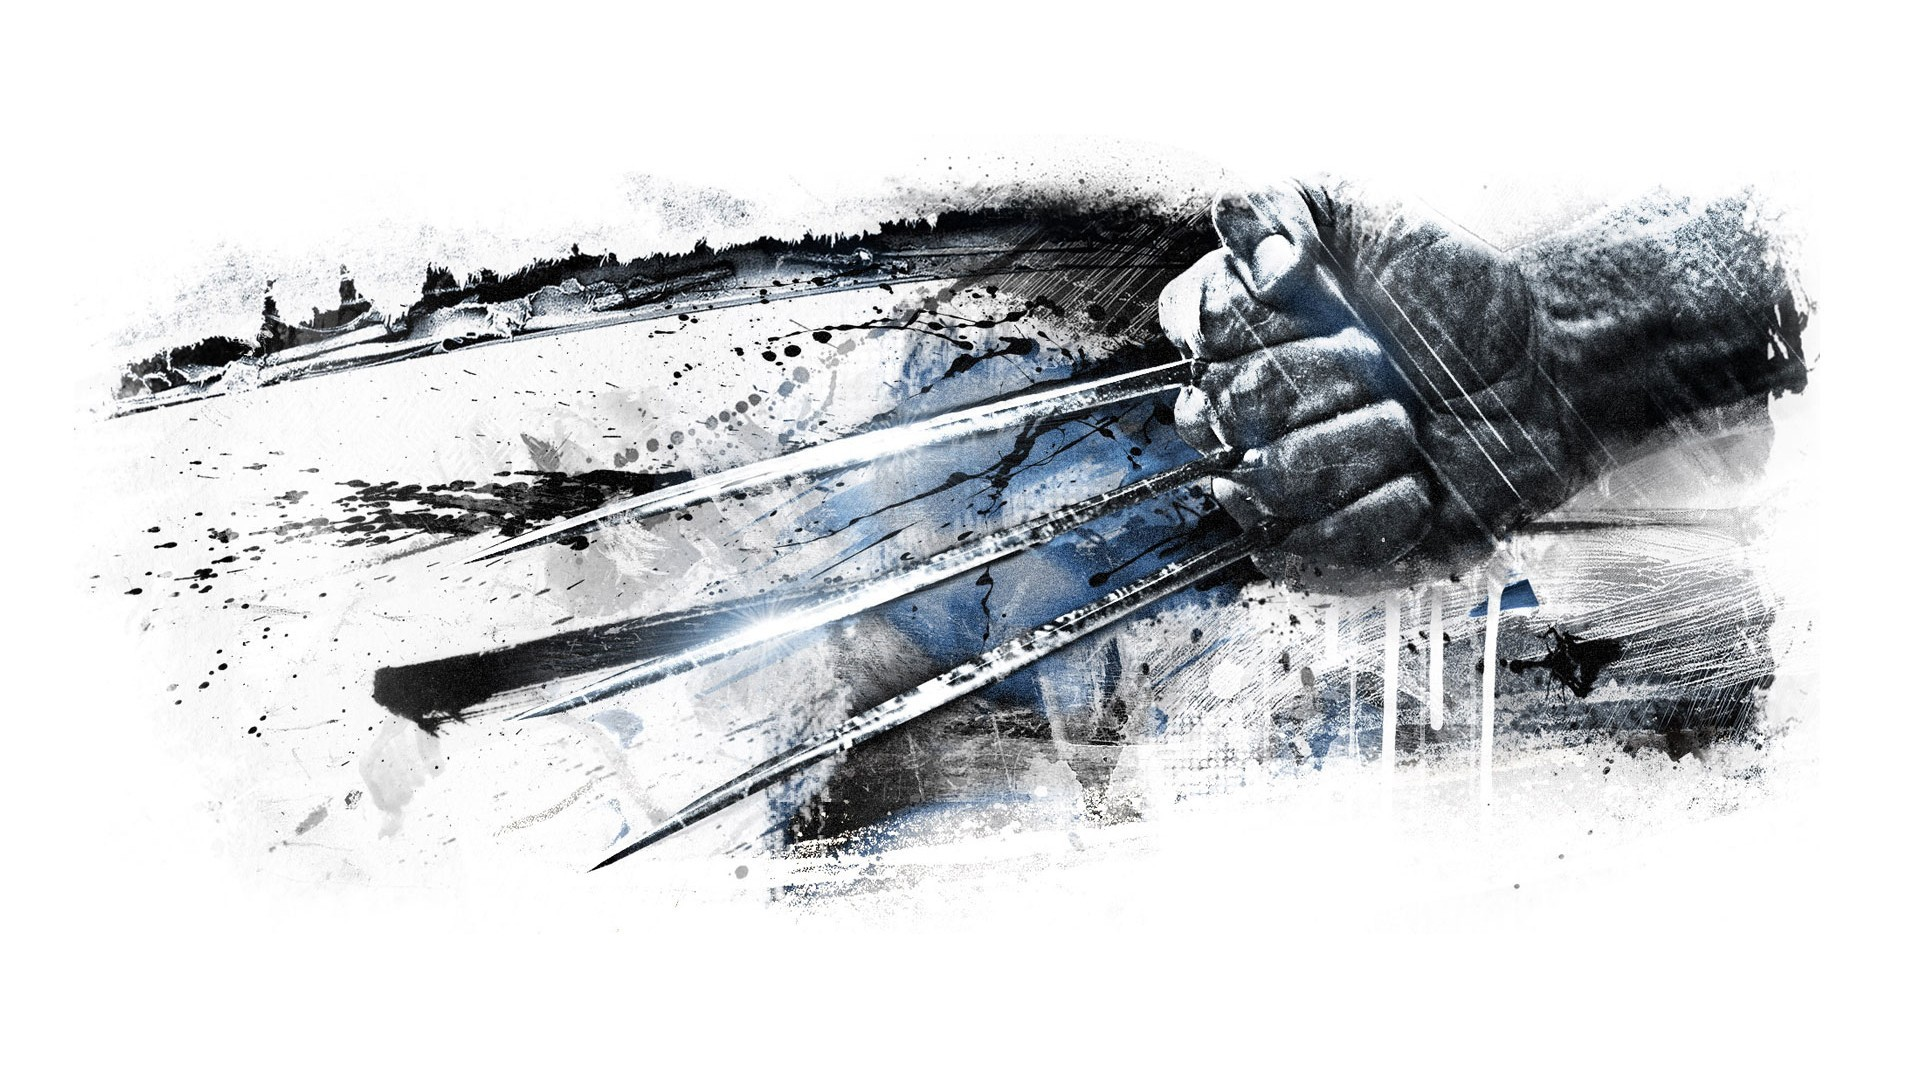 Wolverine drawing hand claws white superhero wallpaper 1920x1080 wolverine drawing hand claws white superhero wallpaper 1920x1080 125739 wallpaperup voltagebd Images